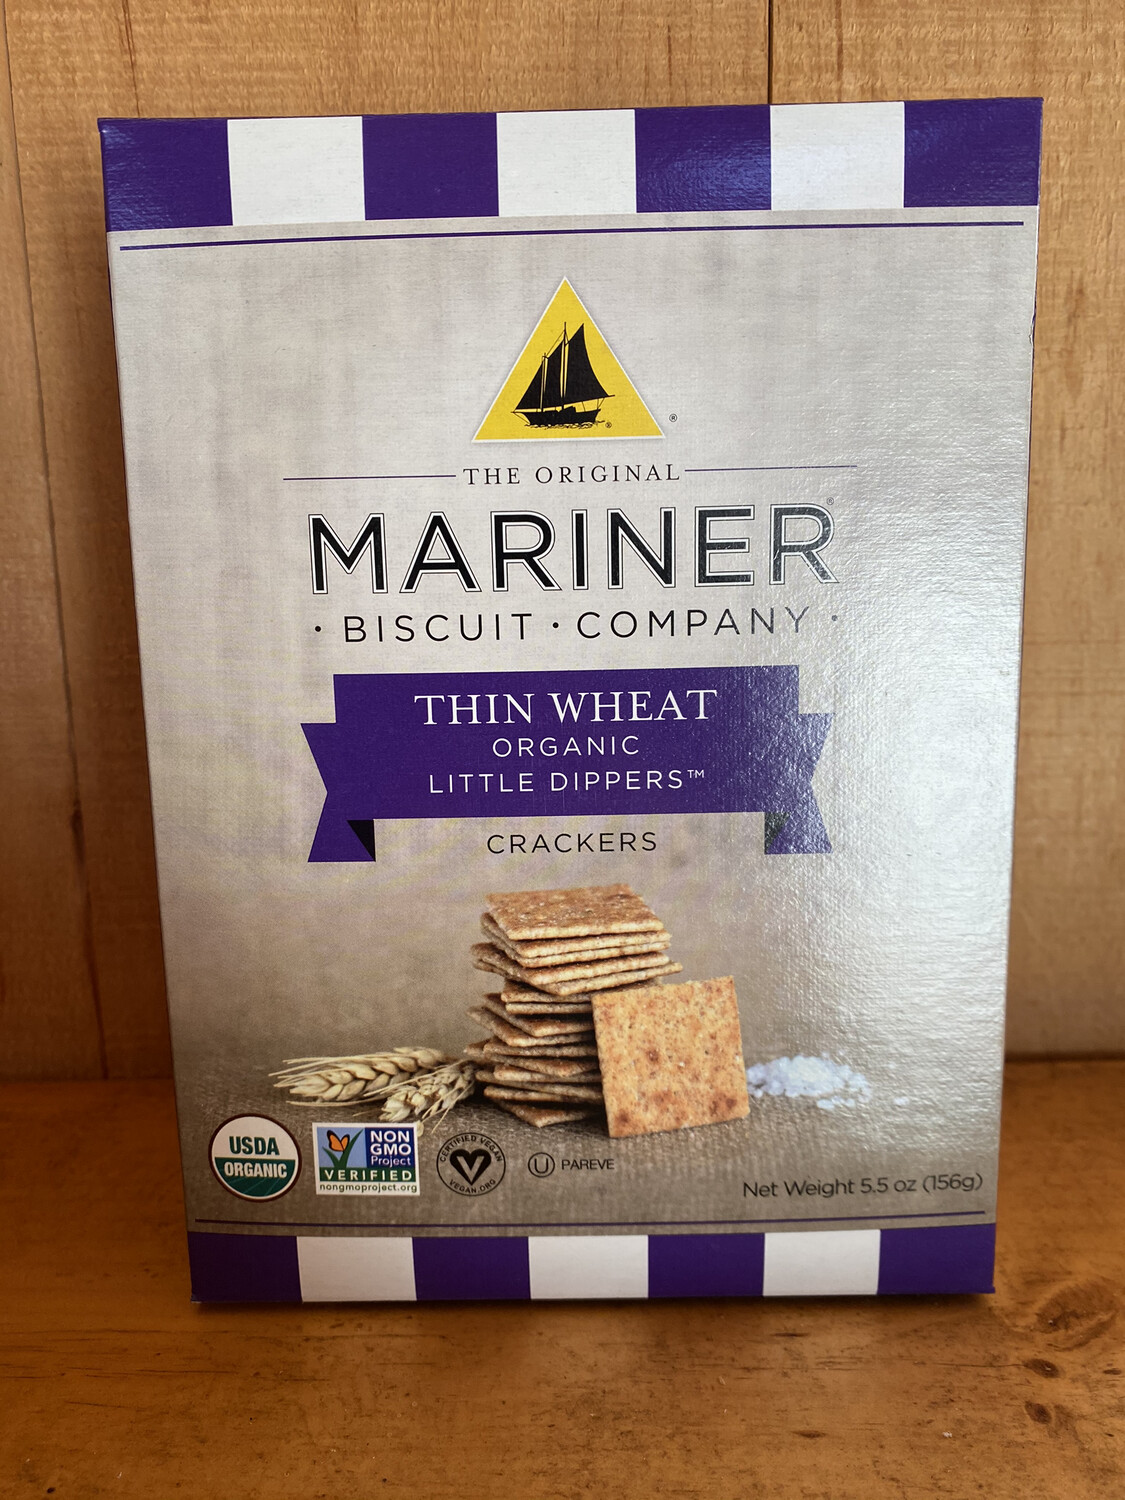 Thin Wheat Organic Little Dipper Crackers | Mariner Biscuit Company | 5.5oz